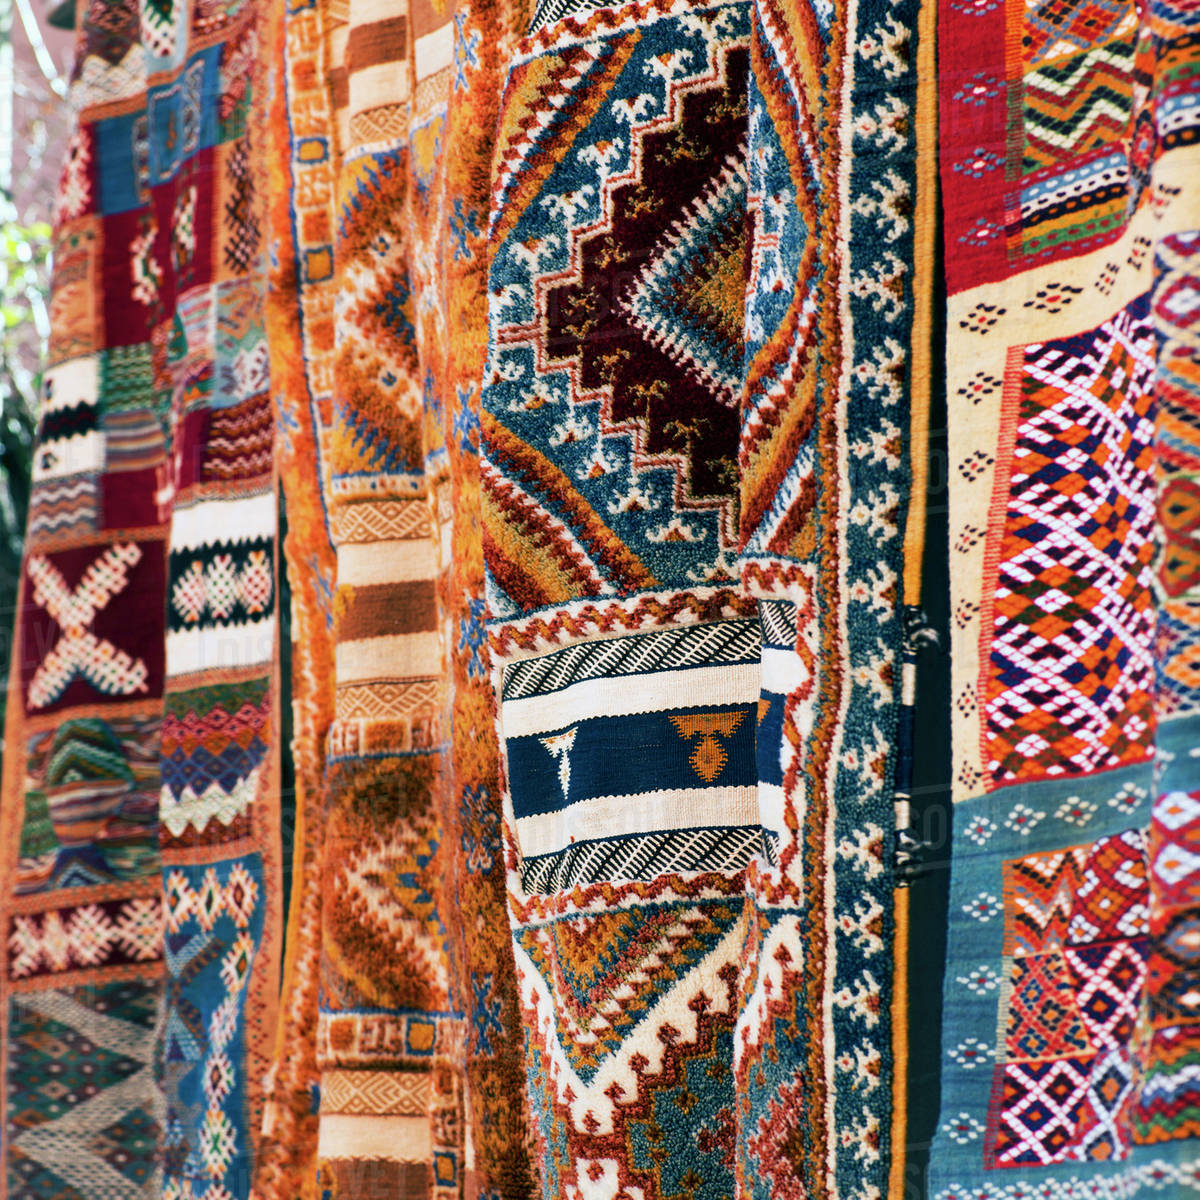 Multi-coloured textiles hanging on display Royalty-free stock photo